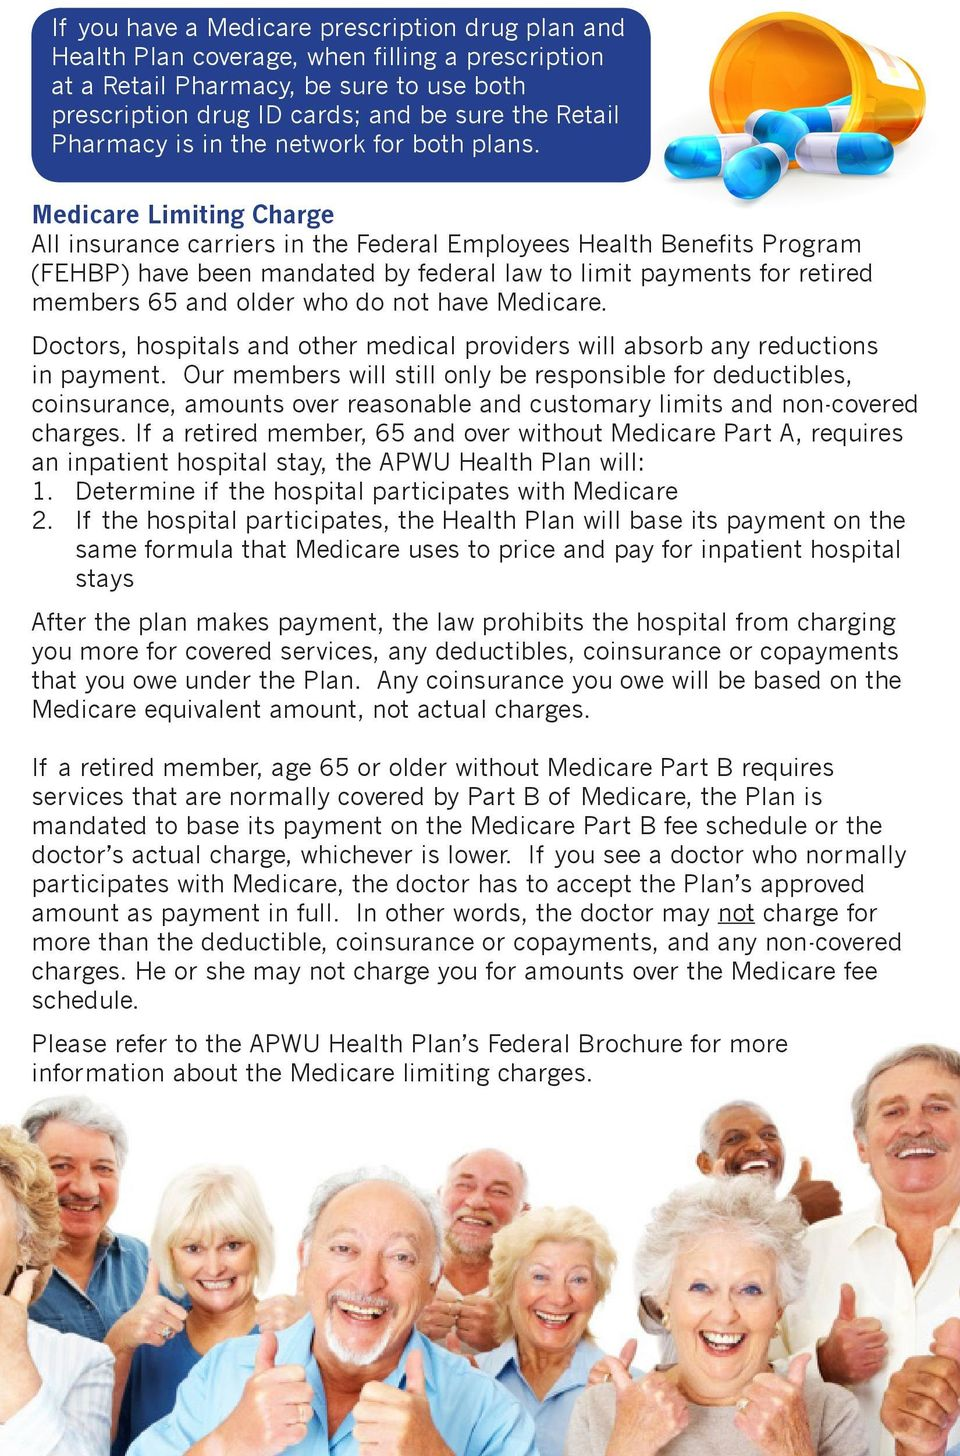 Medicare Limiting Charge All insurance carriers in the Federal Employees Health Benefits Program (FEHBP) have been mandated by federal law to limit payments for retired members 65 and older who do